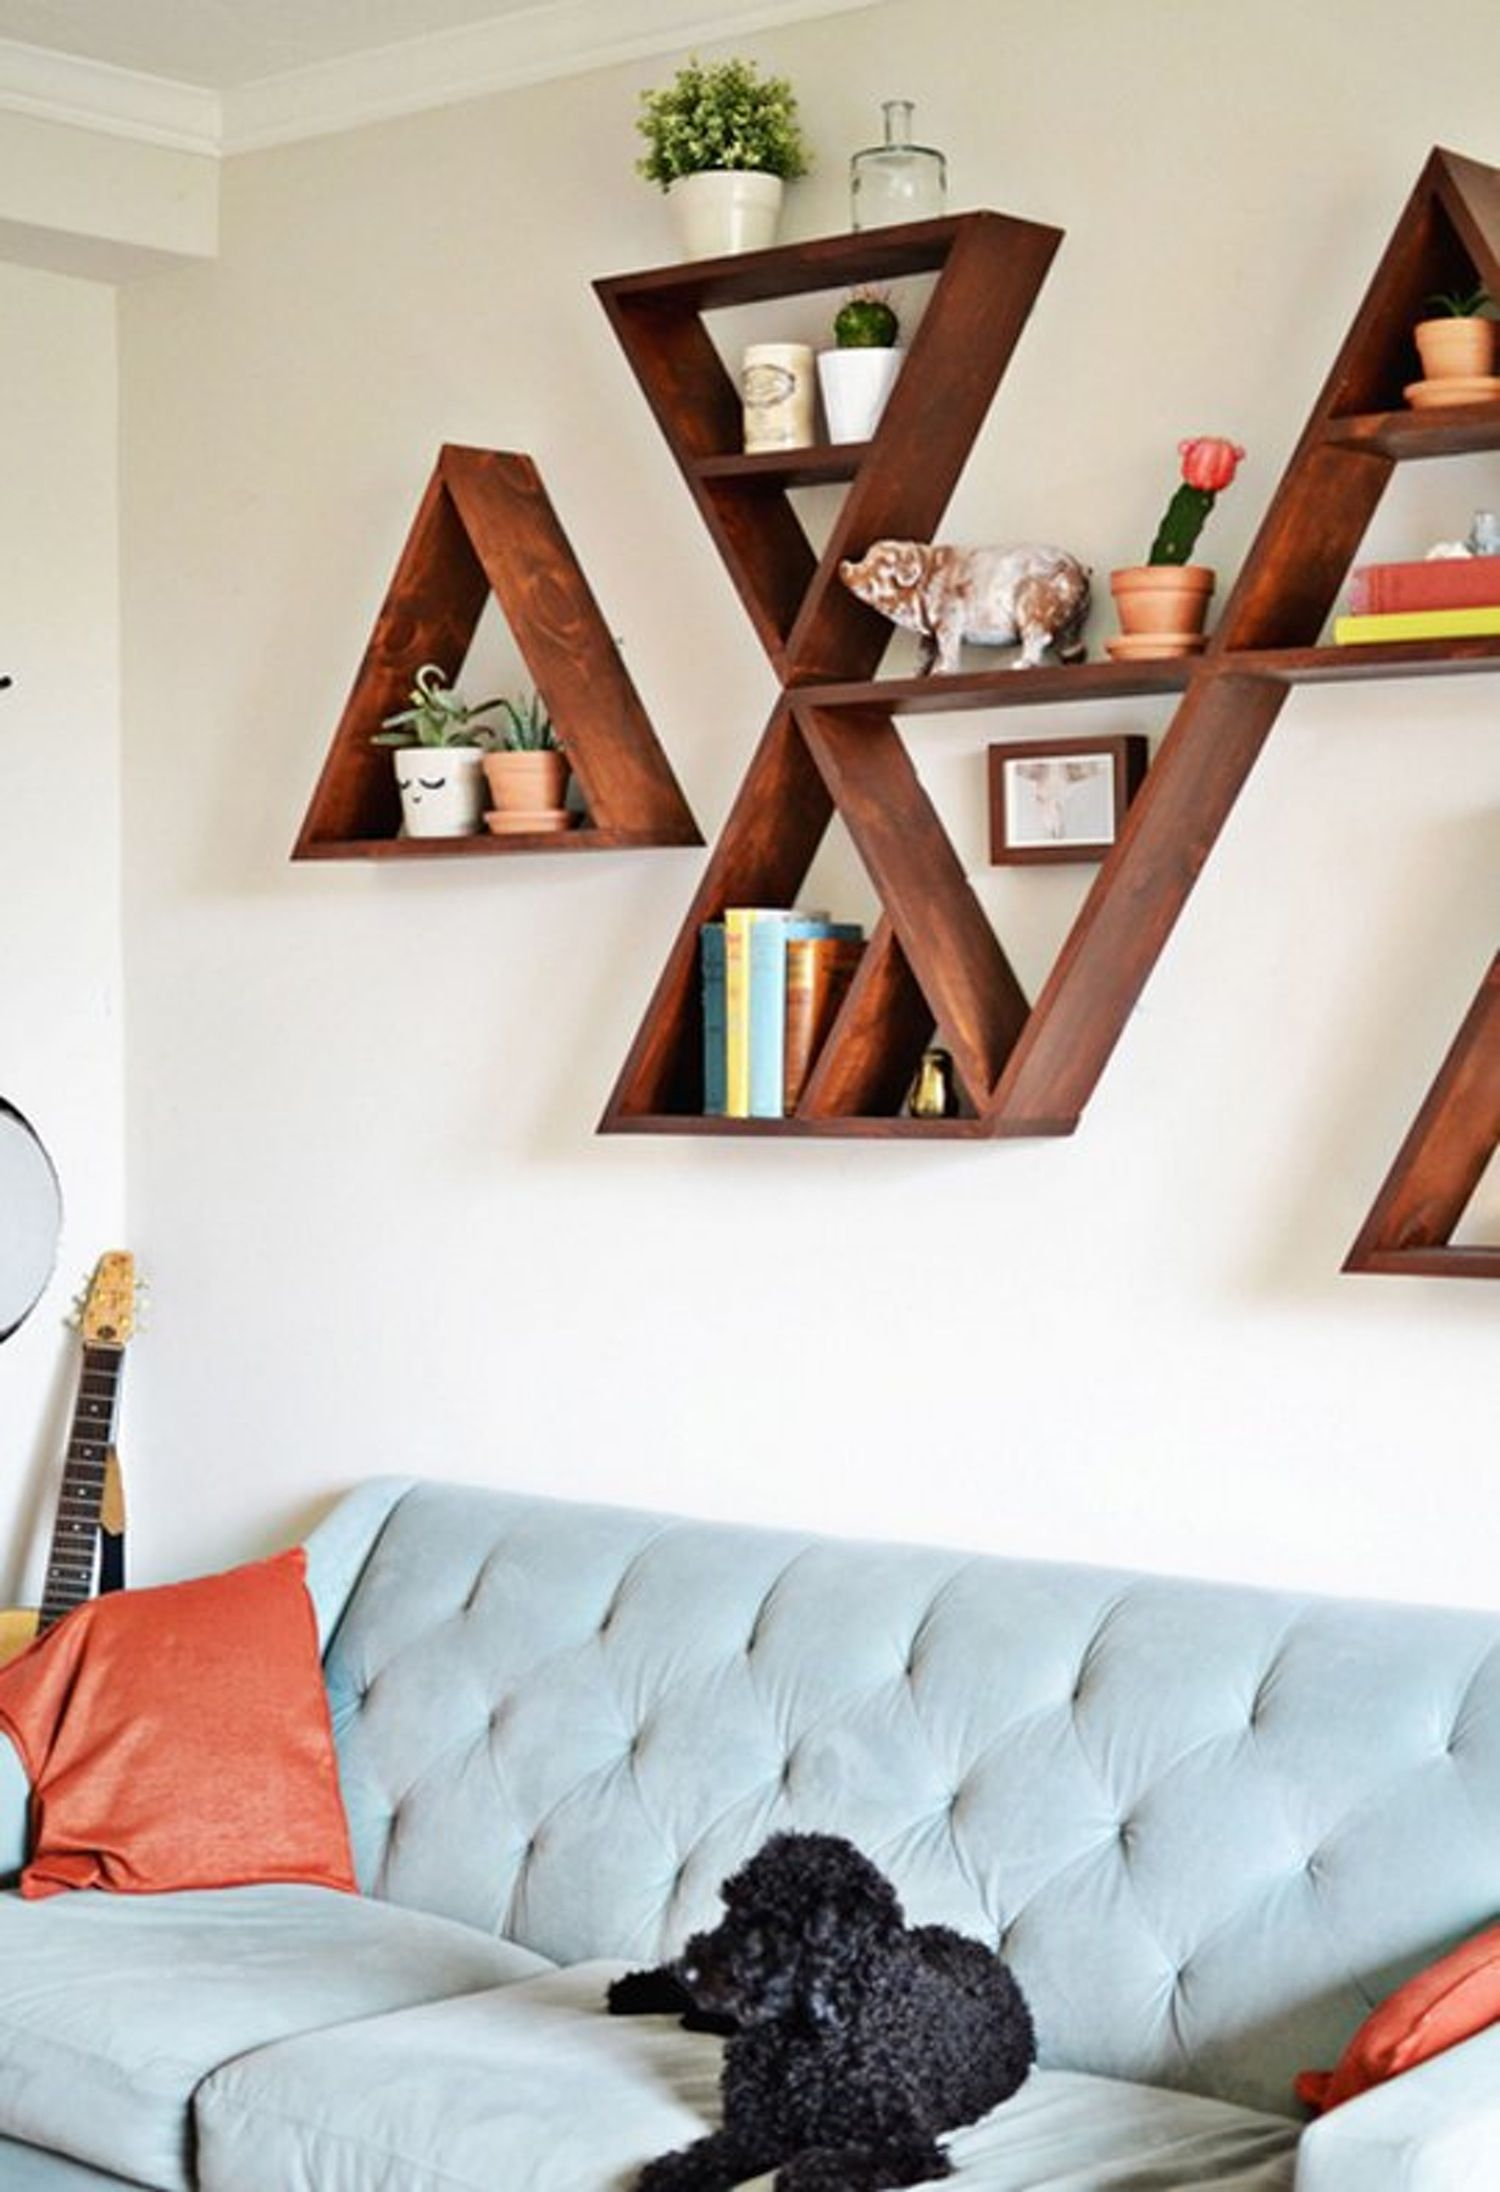 Shelves 7 Diy Projects For Shelves With Unique Shapes # Muebles Nuevo Hogar